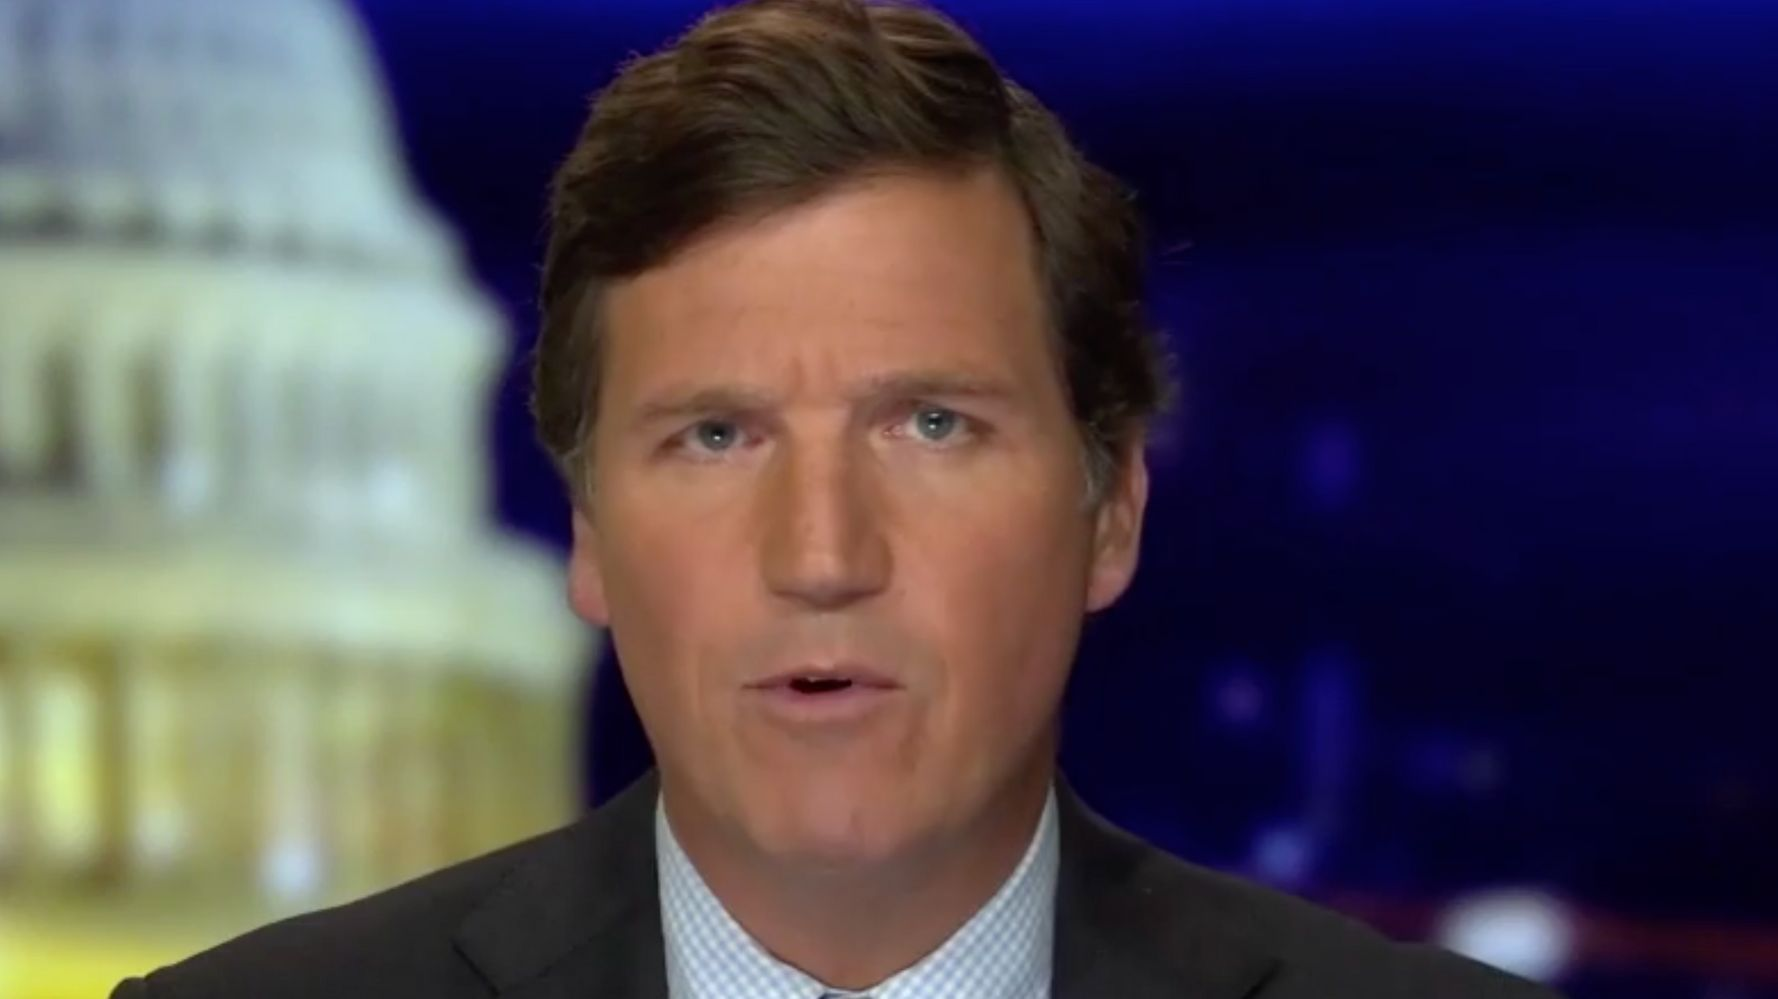 Tucker Carlson Claims He's Going To Leave 'Fallen Man' Hunter Biden Alone Now